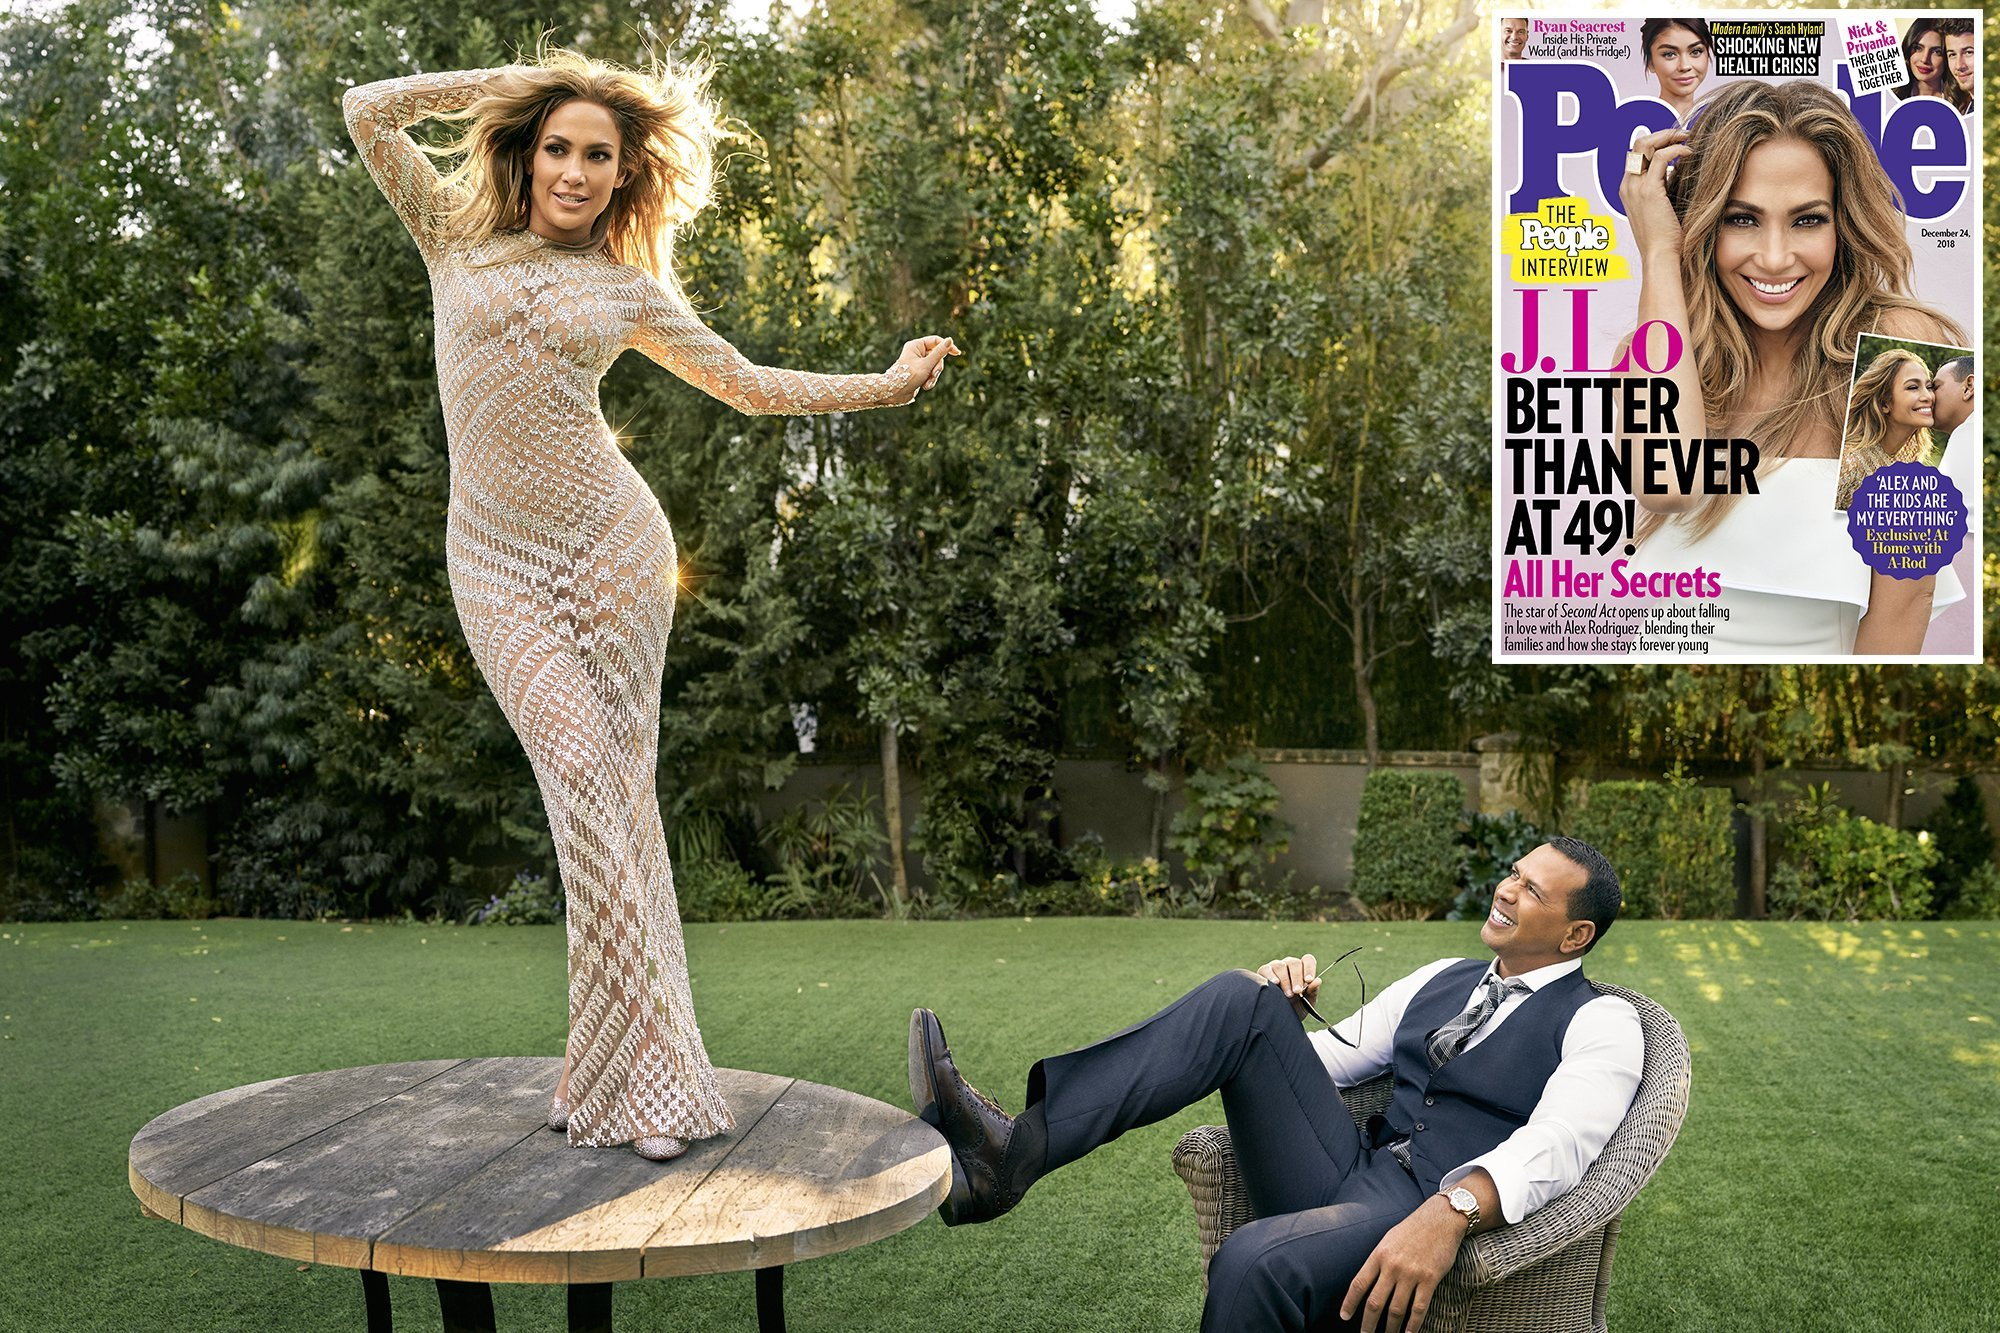 Jennifer Lopez on What She's Learned About Relationships: 'I Was Done Blaming Other People'